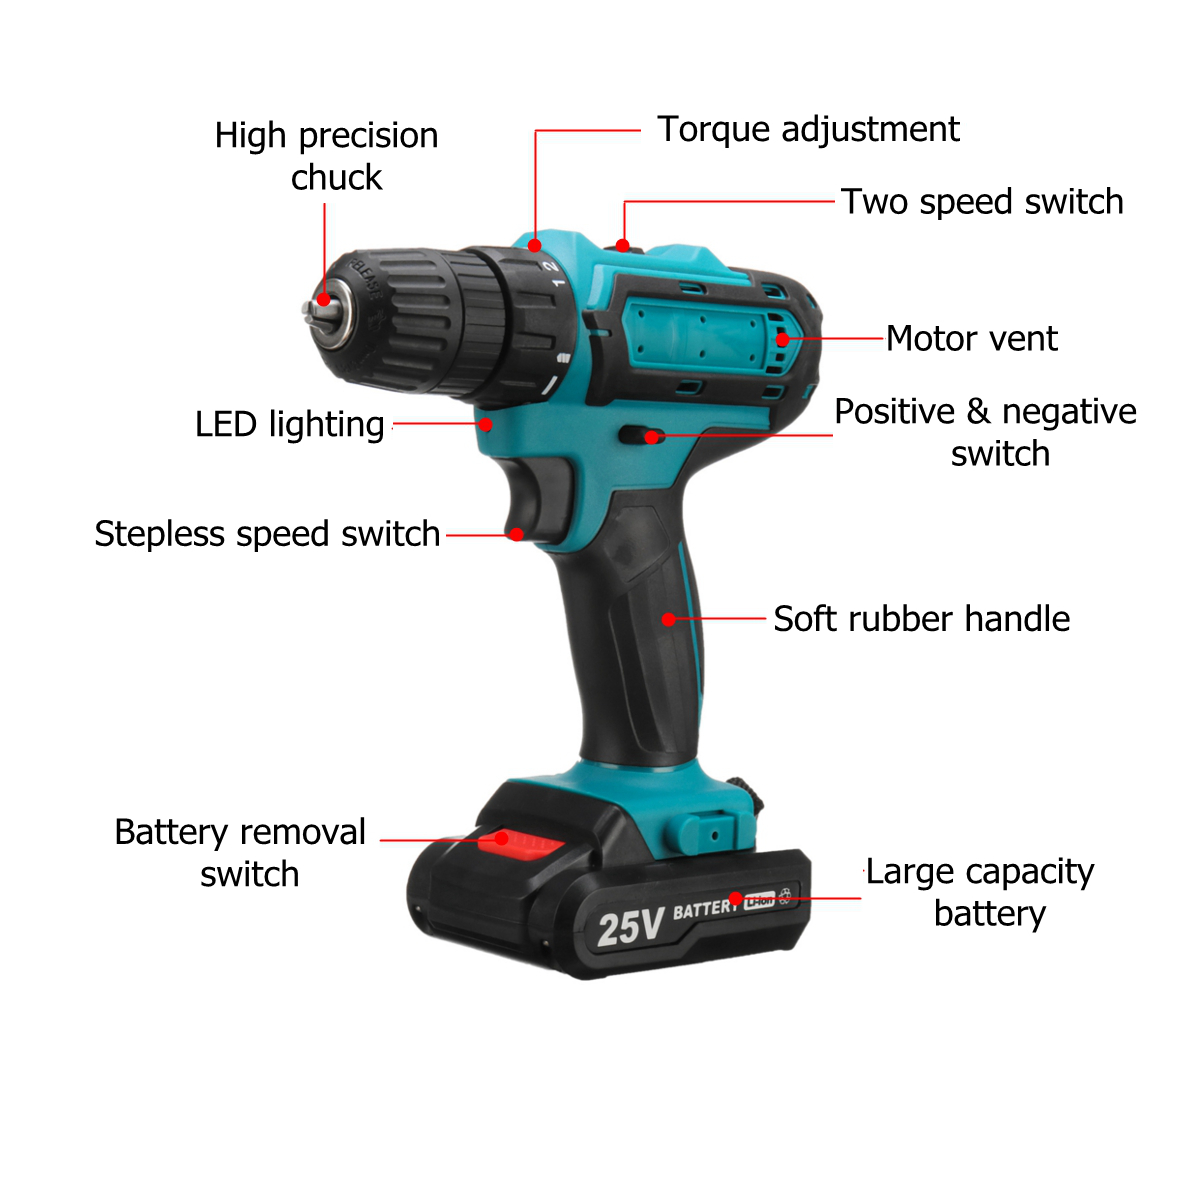 25V Rechargable Lithium Power Dirlls Cordless Electric Drill 2 Speed Adjustment LED Lighting Screw Driver Tool With 1 Or 2 Batteries